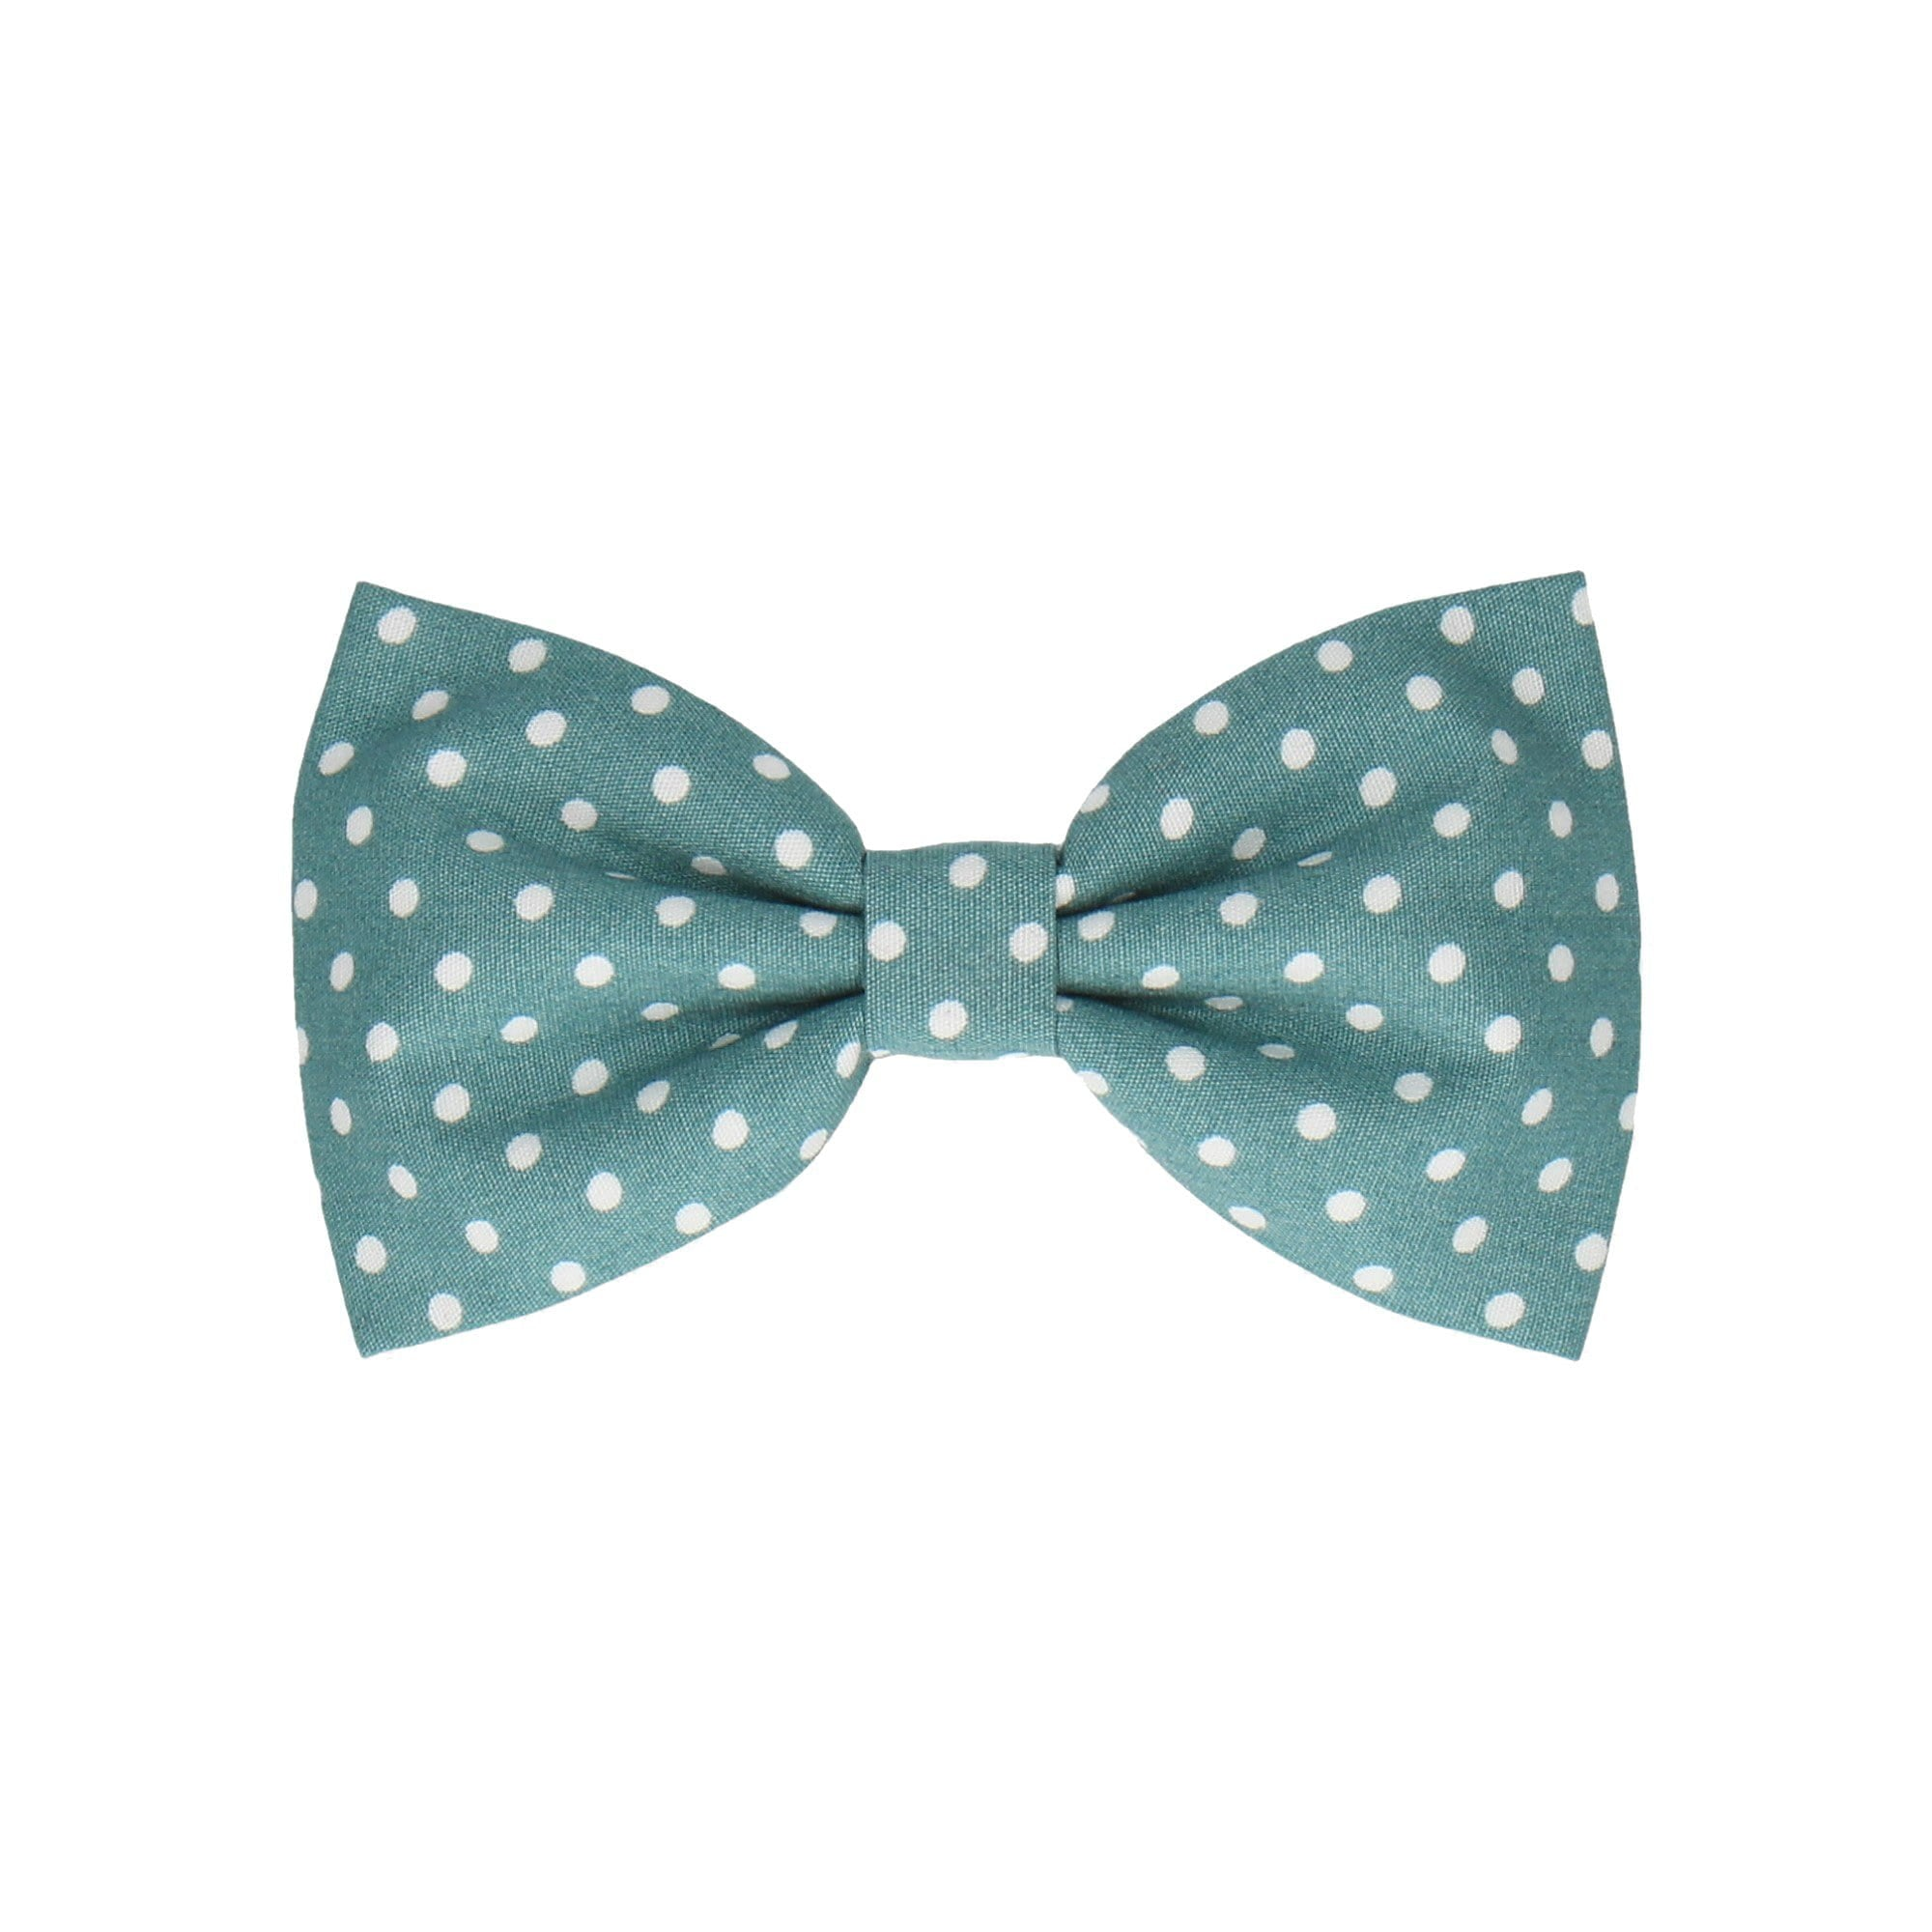 Chiswick in Sea Green (Child's Bow Tie)